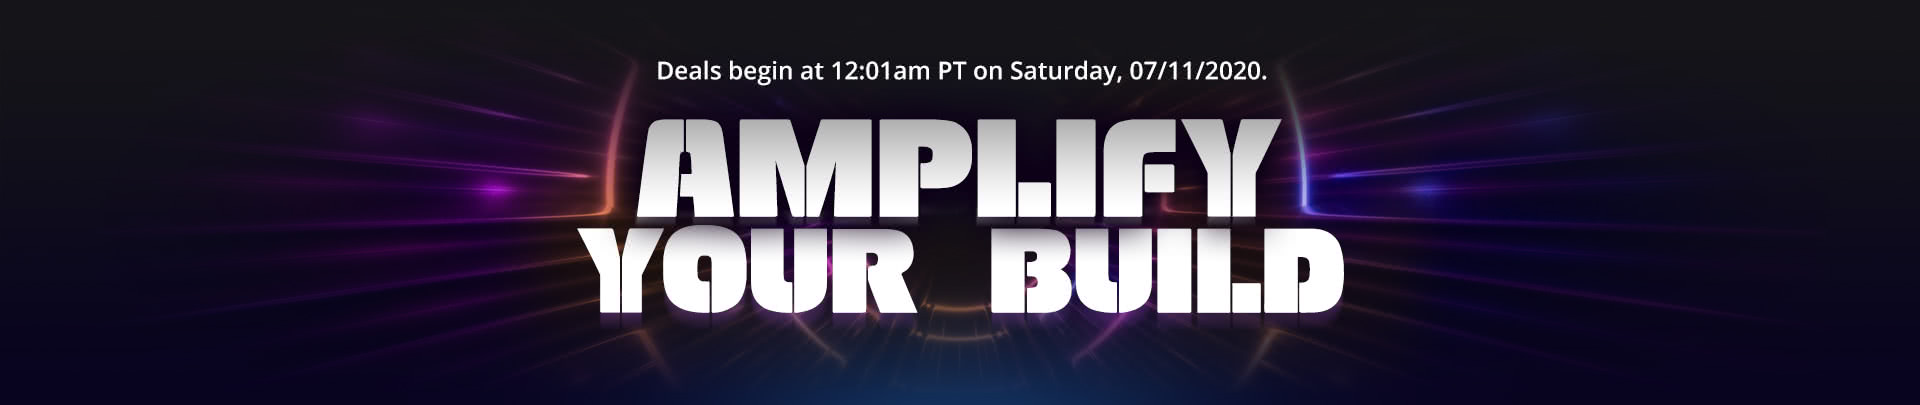 Amplify your Build